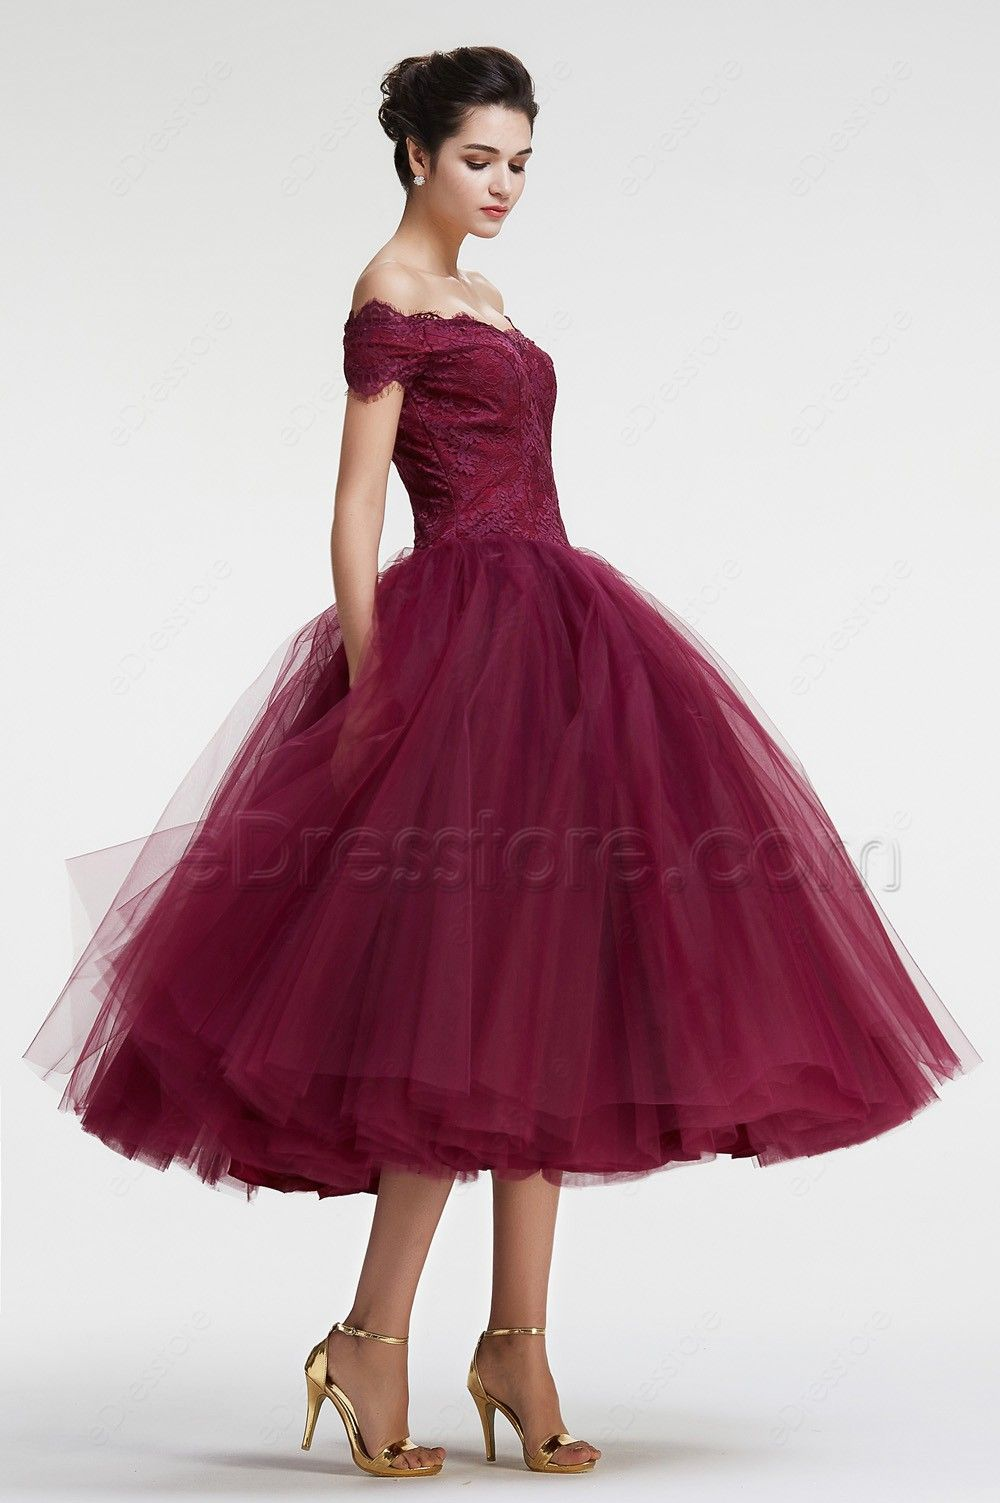 c774011b75b The burgundy prom dress features off the shoulder neckline with scalloped  lace